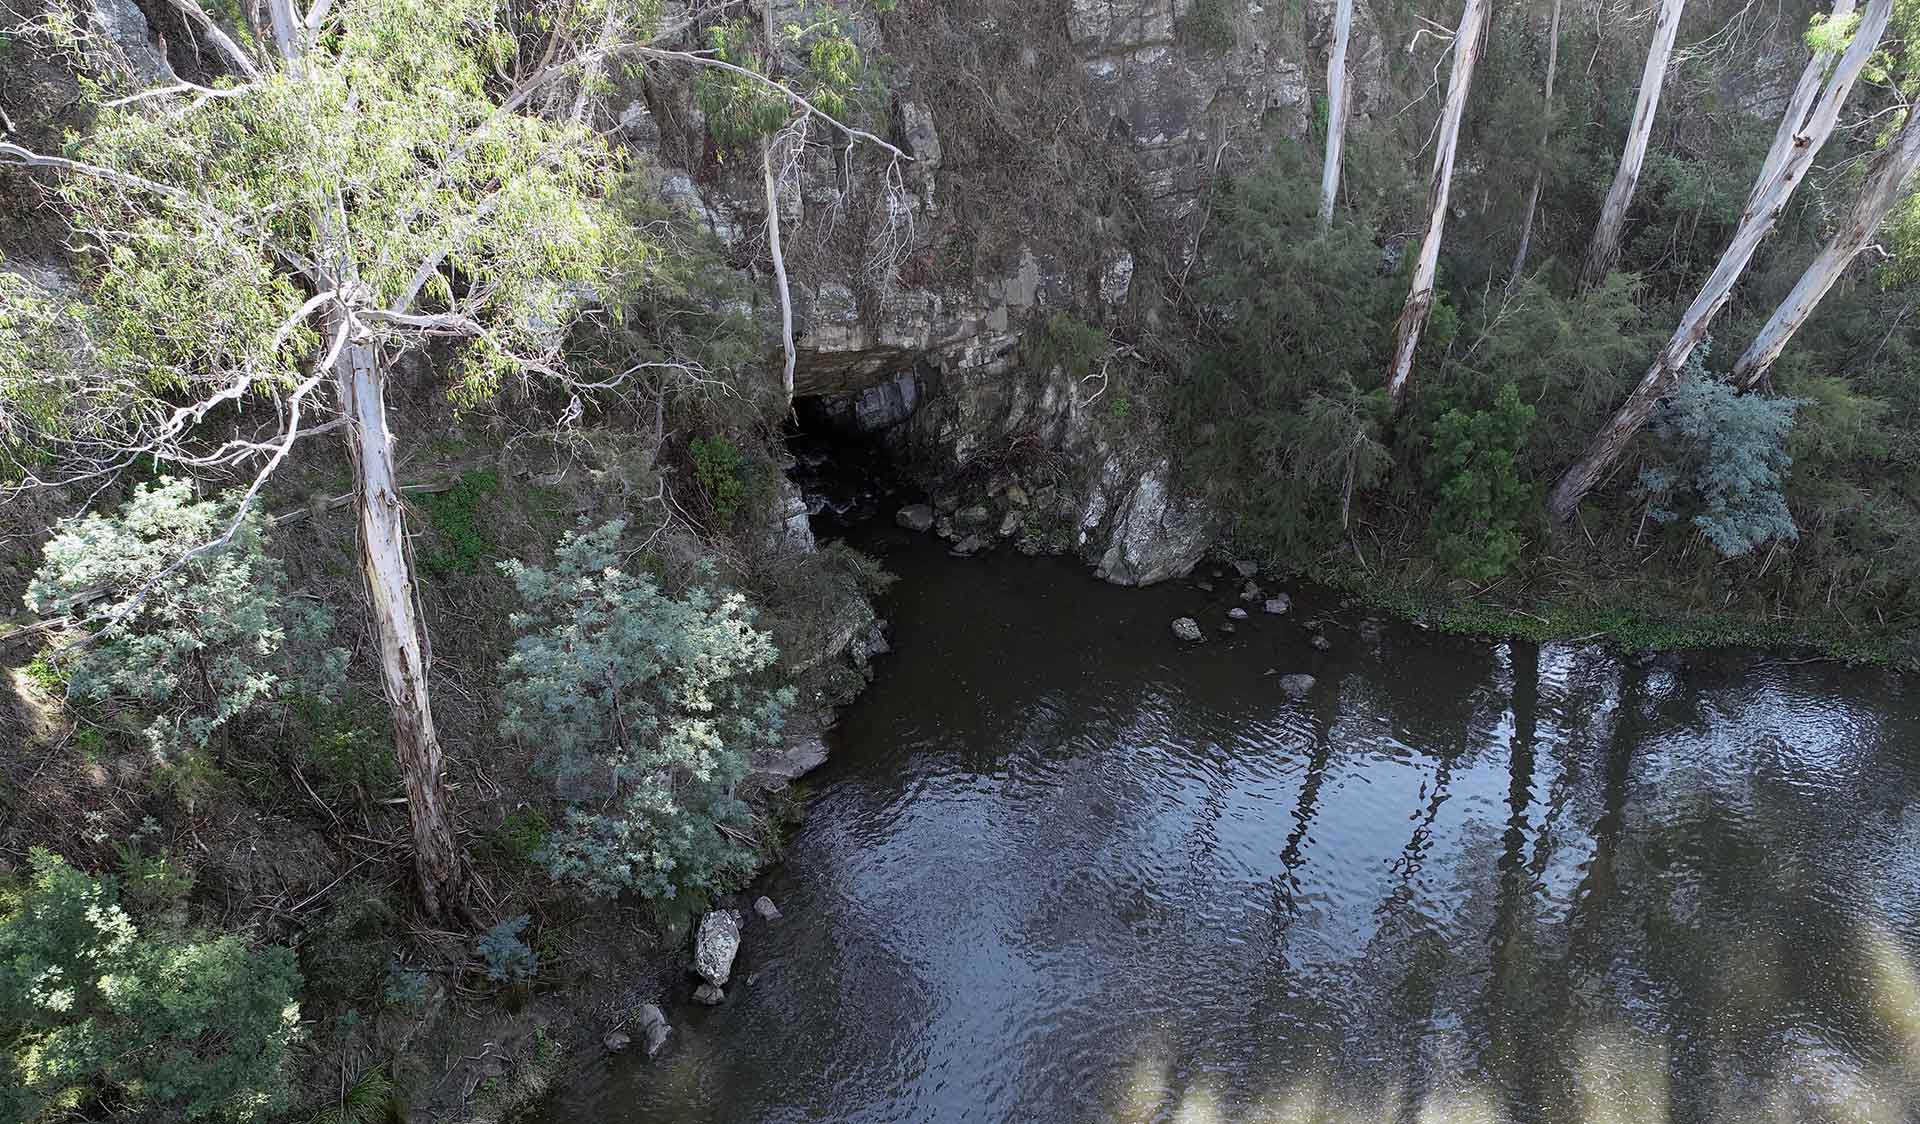 The Pound Bend Tunnel on the Yarra River near the Warrandyte State Park.